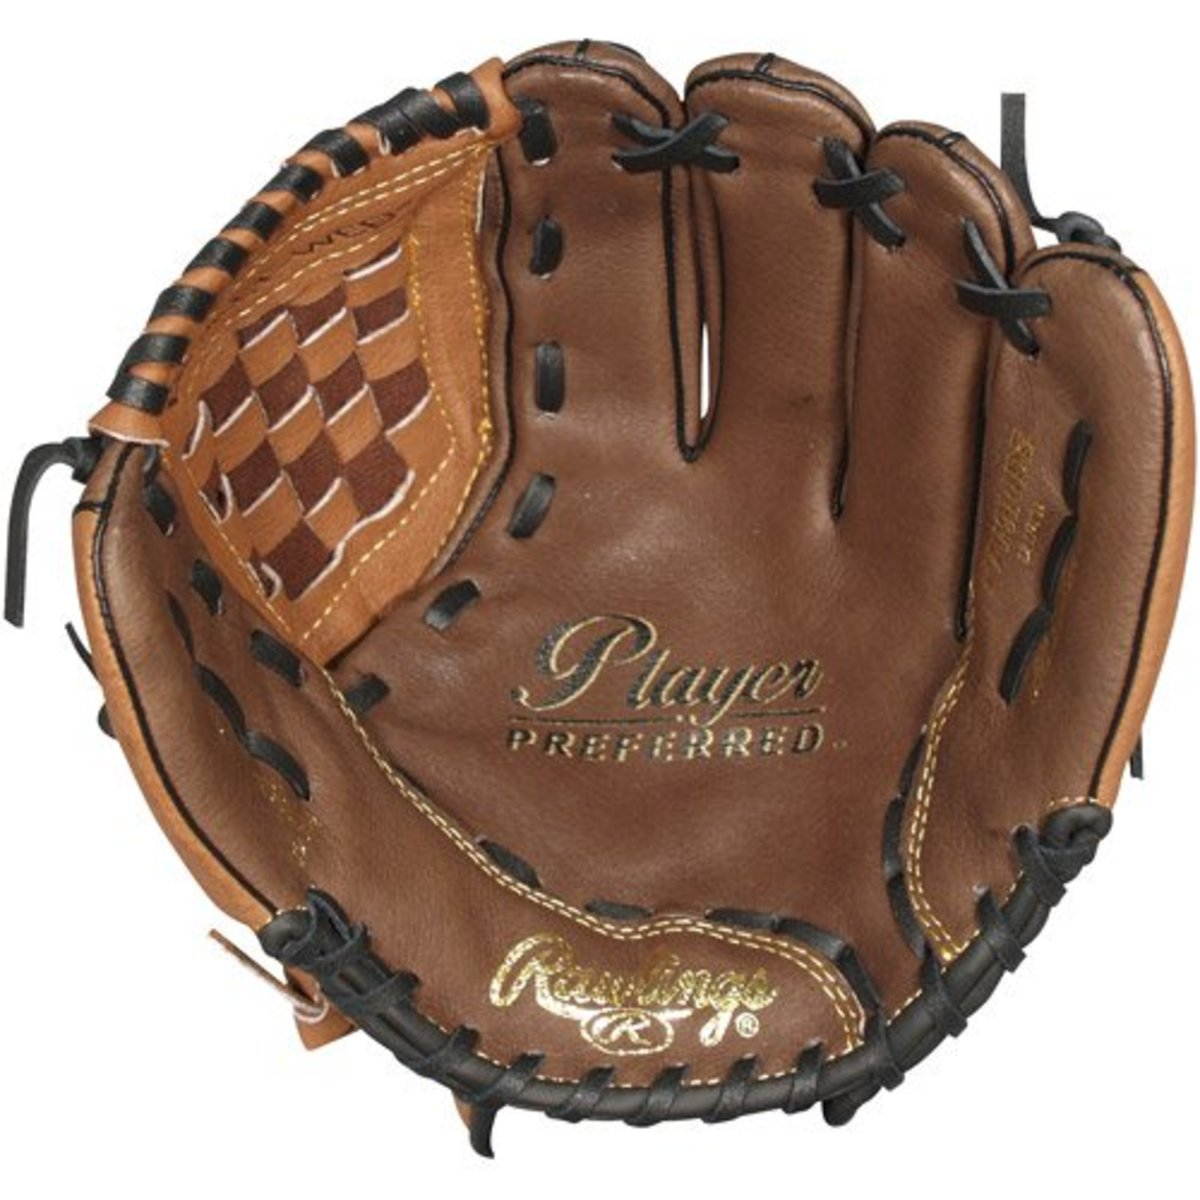 Make sure you know exactly what kind of glove your player wants and what they play well with.